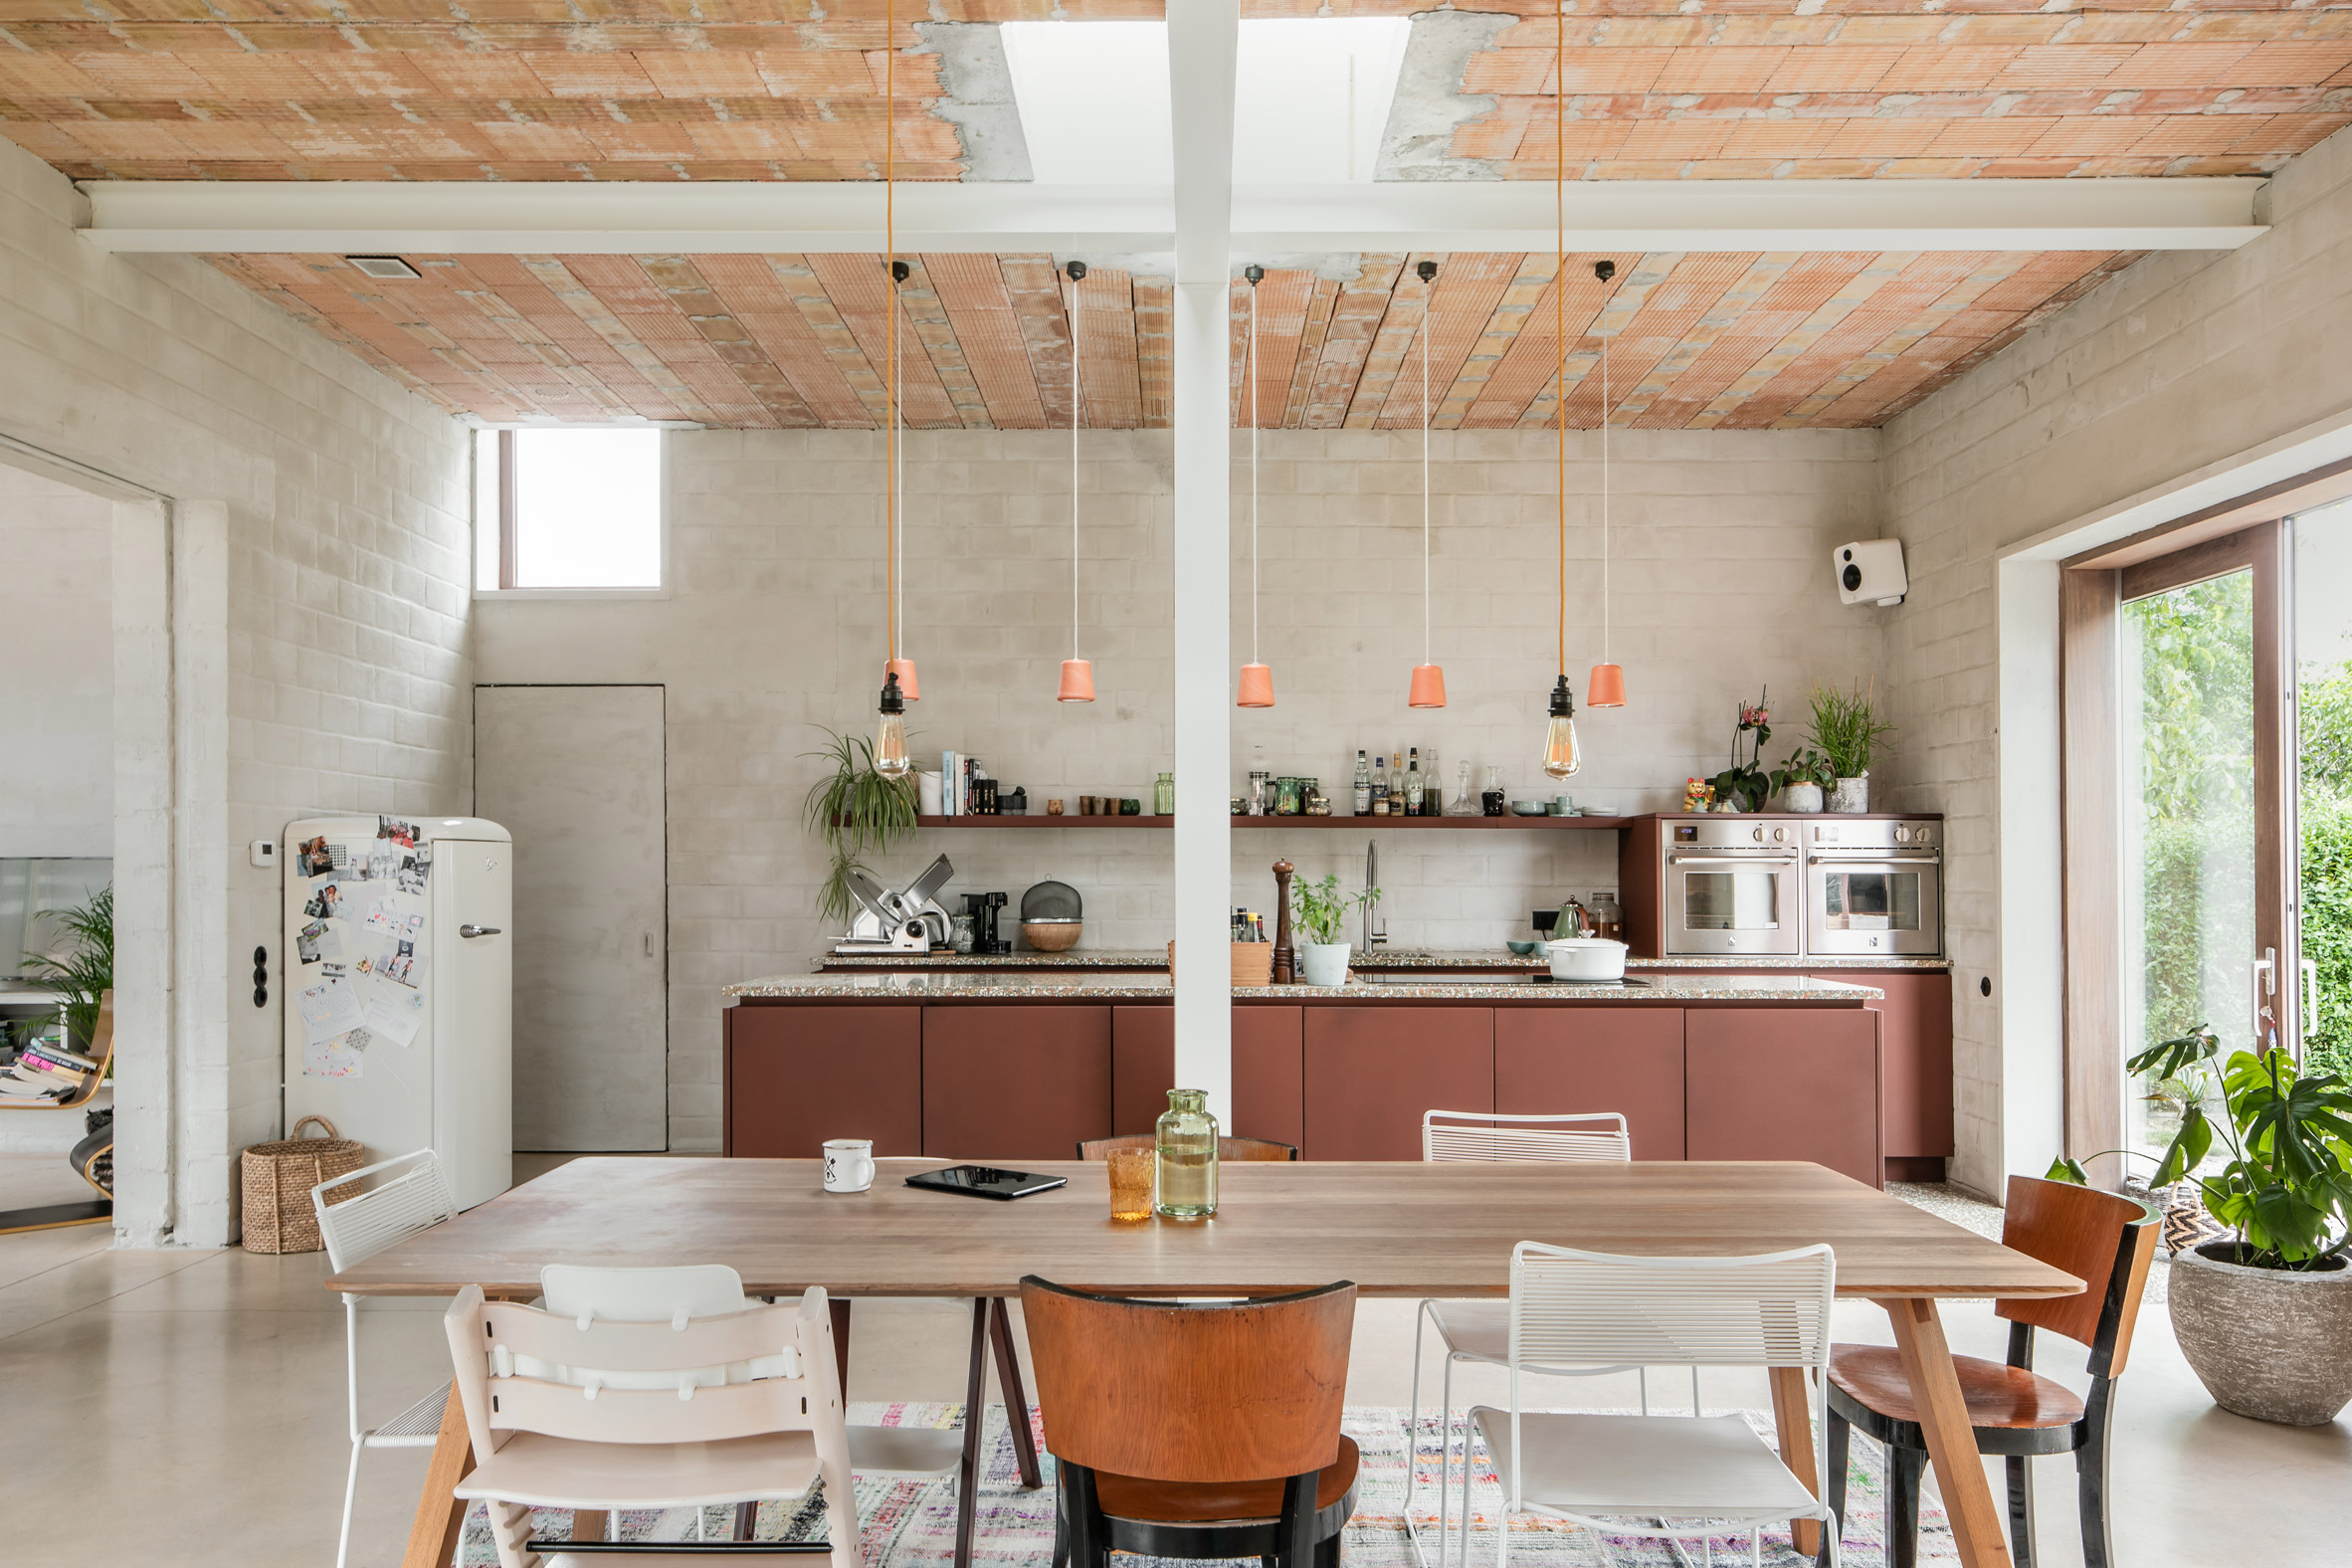 A large kitchen with exposed steel beams